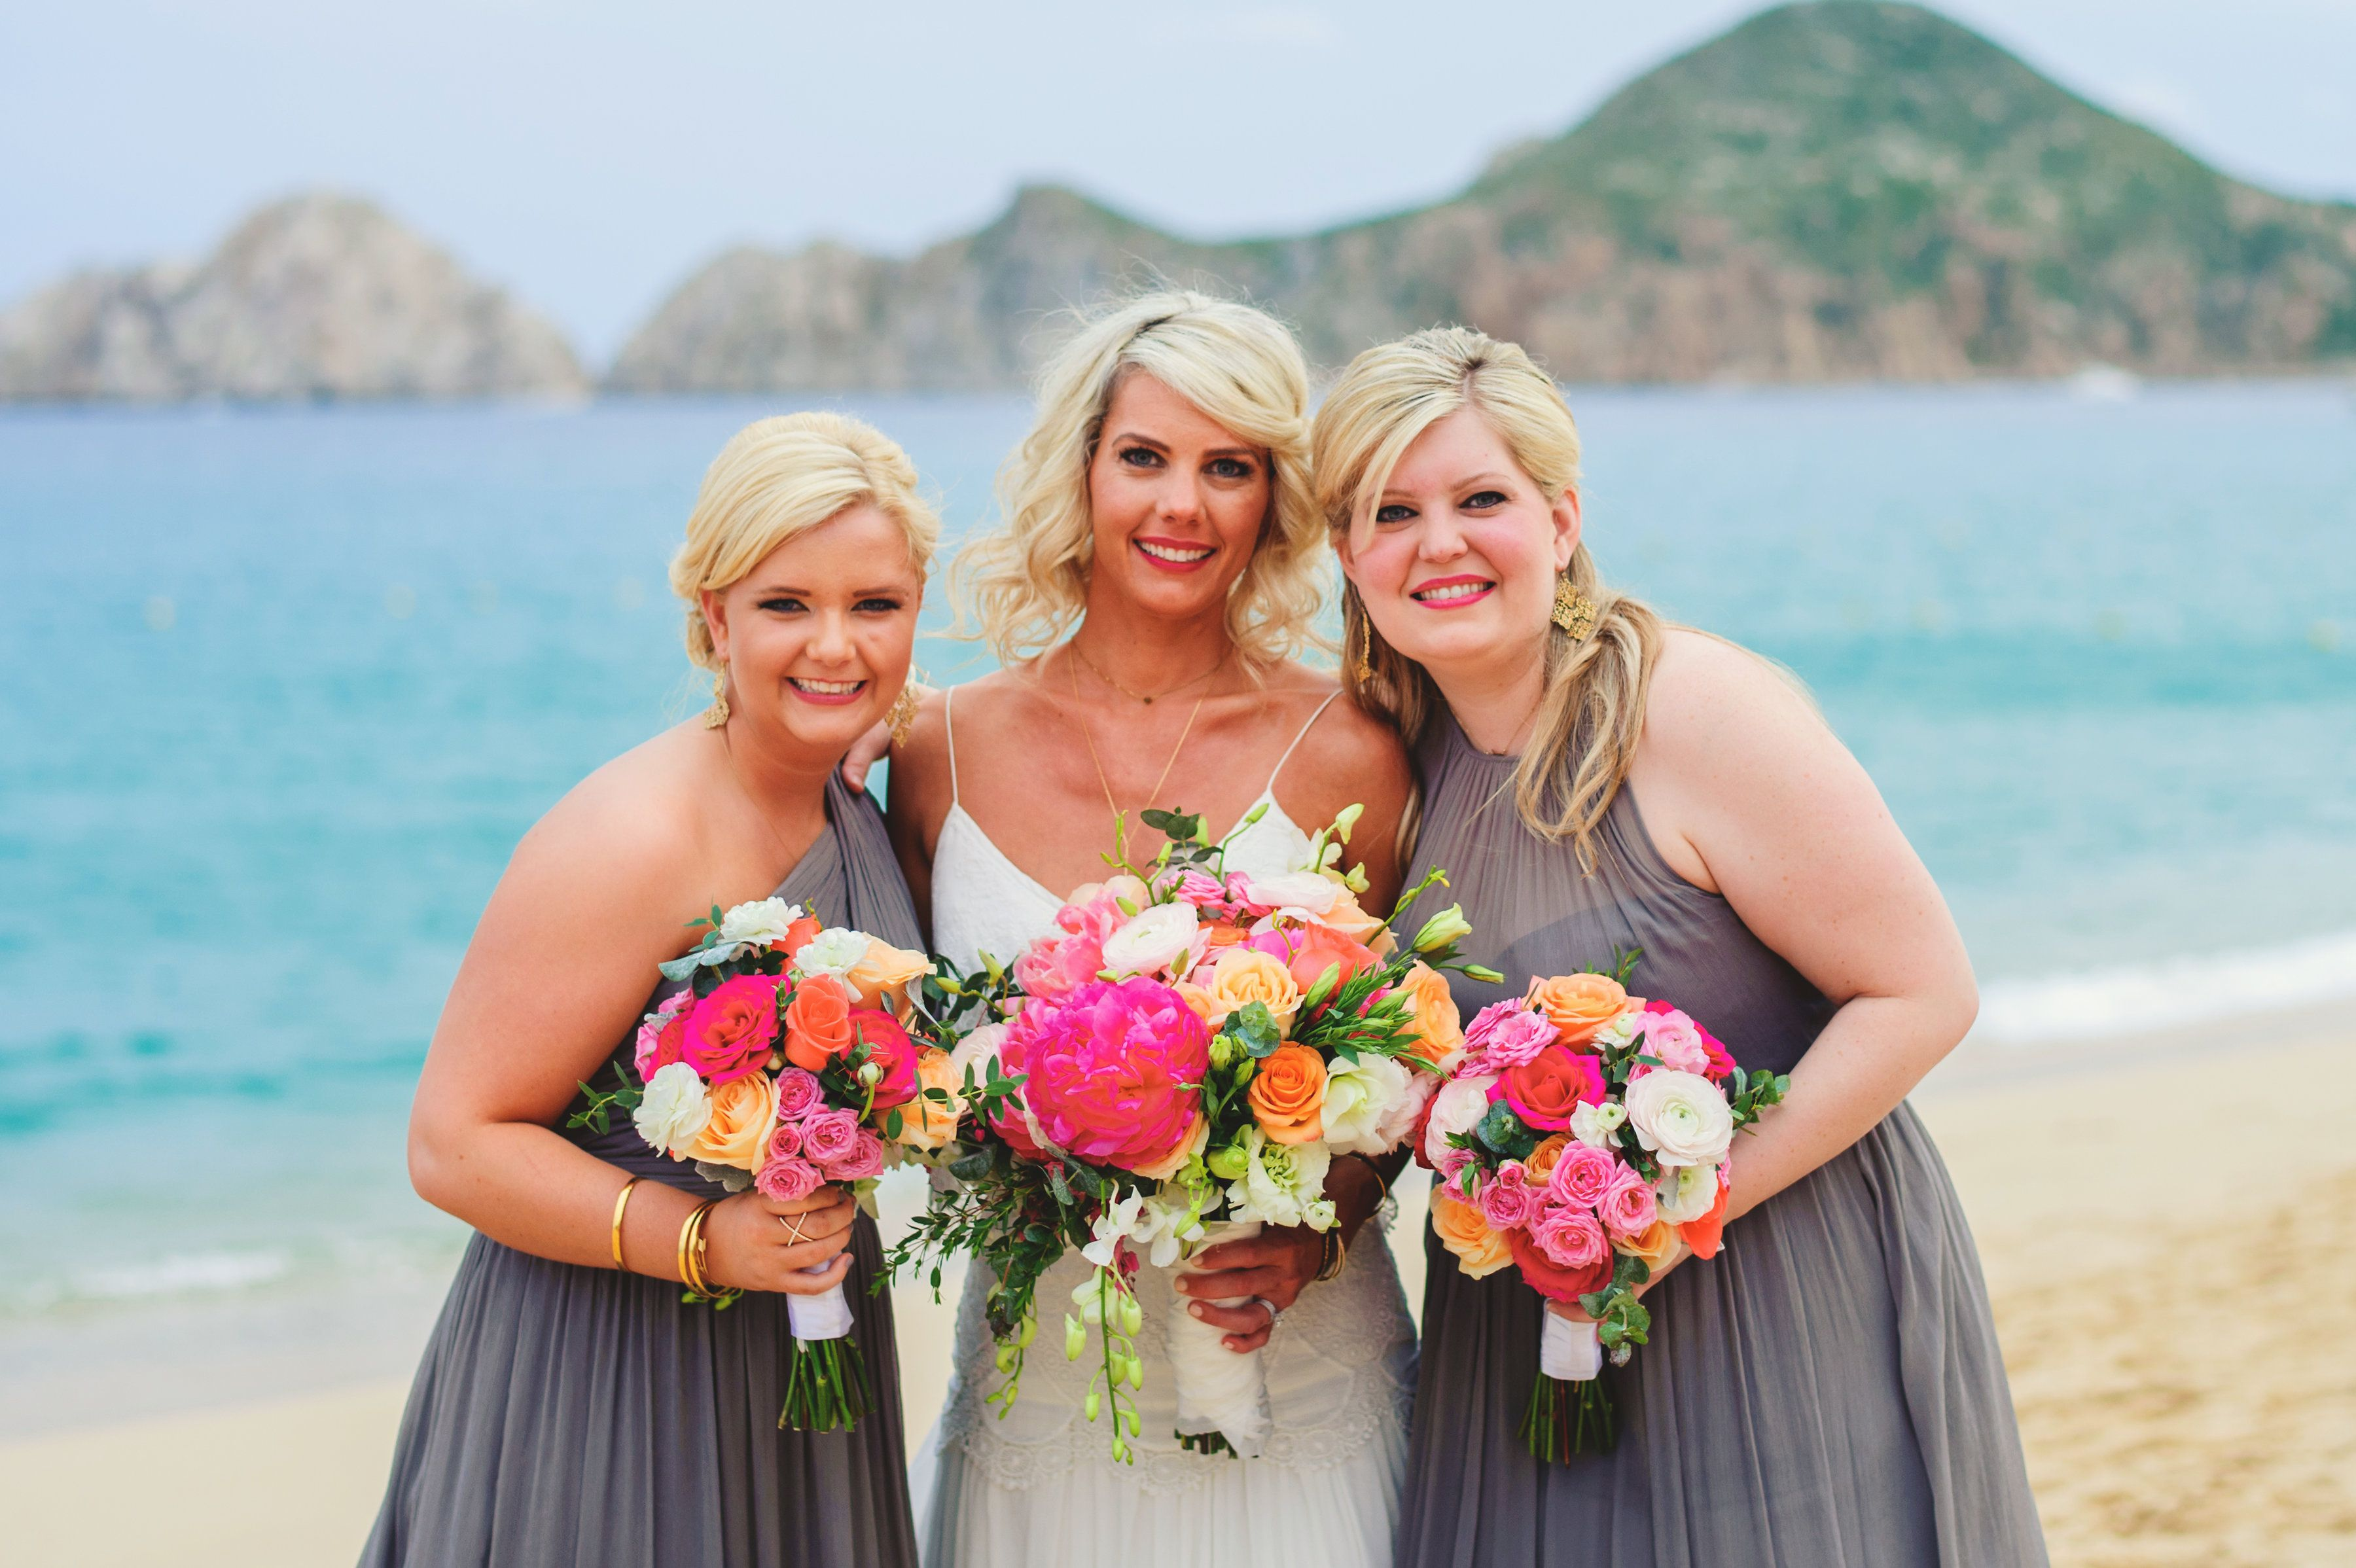 bride with bridesmaids at beach wedding in Cabo San Lucas with Peonies Bouquets